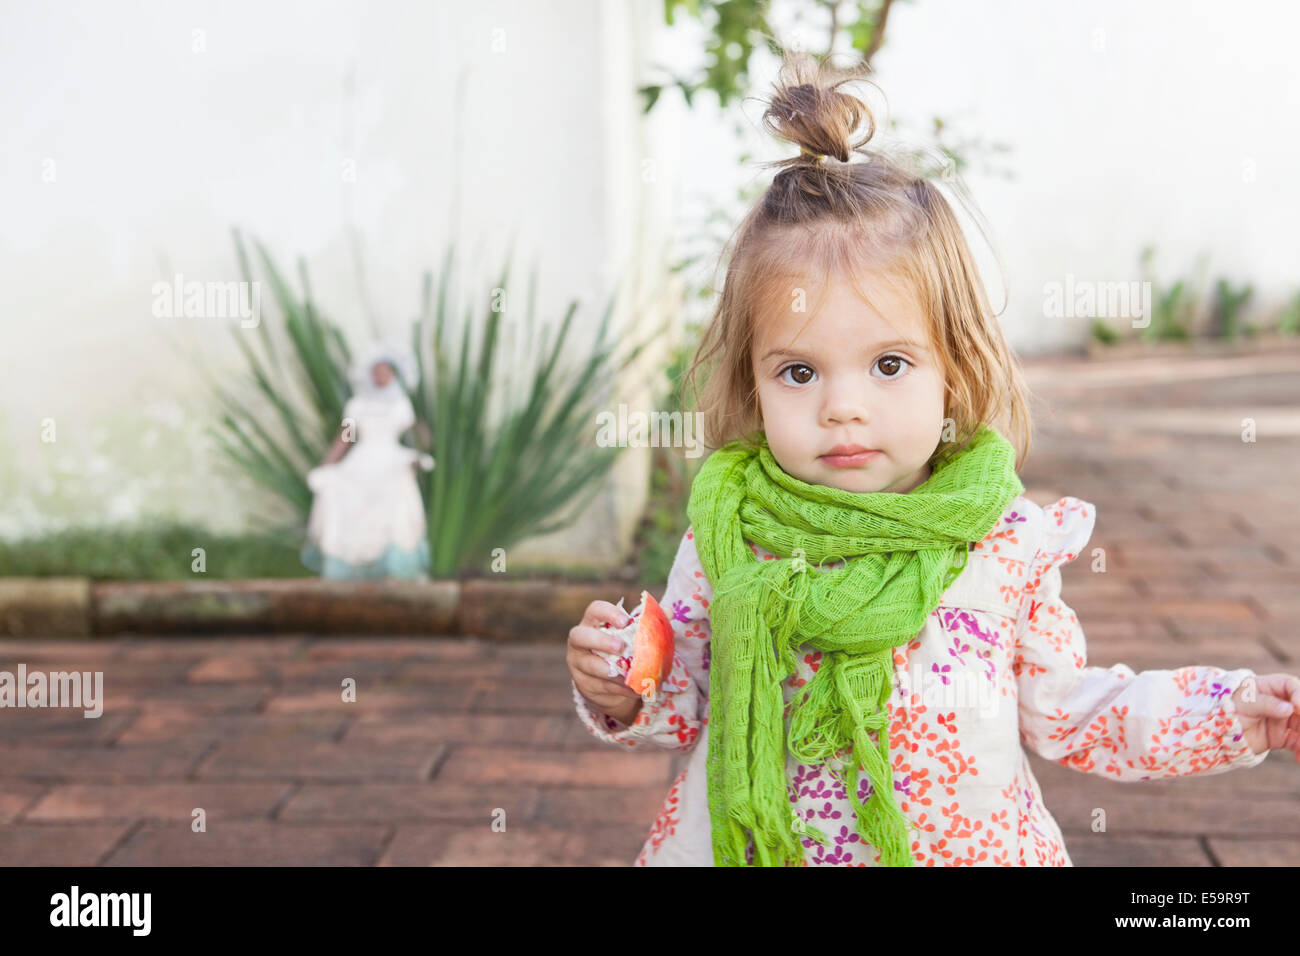 Baby Girl eating fruit en plein air Photo Stock